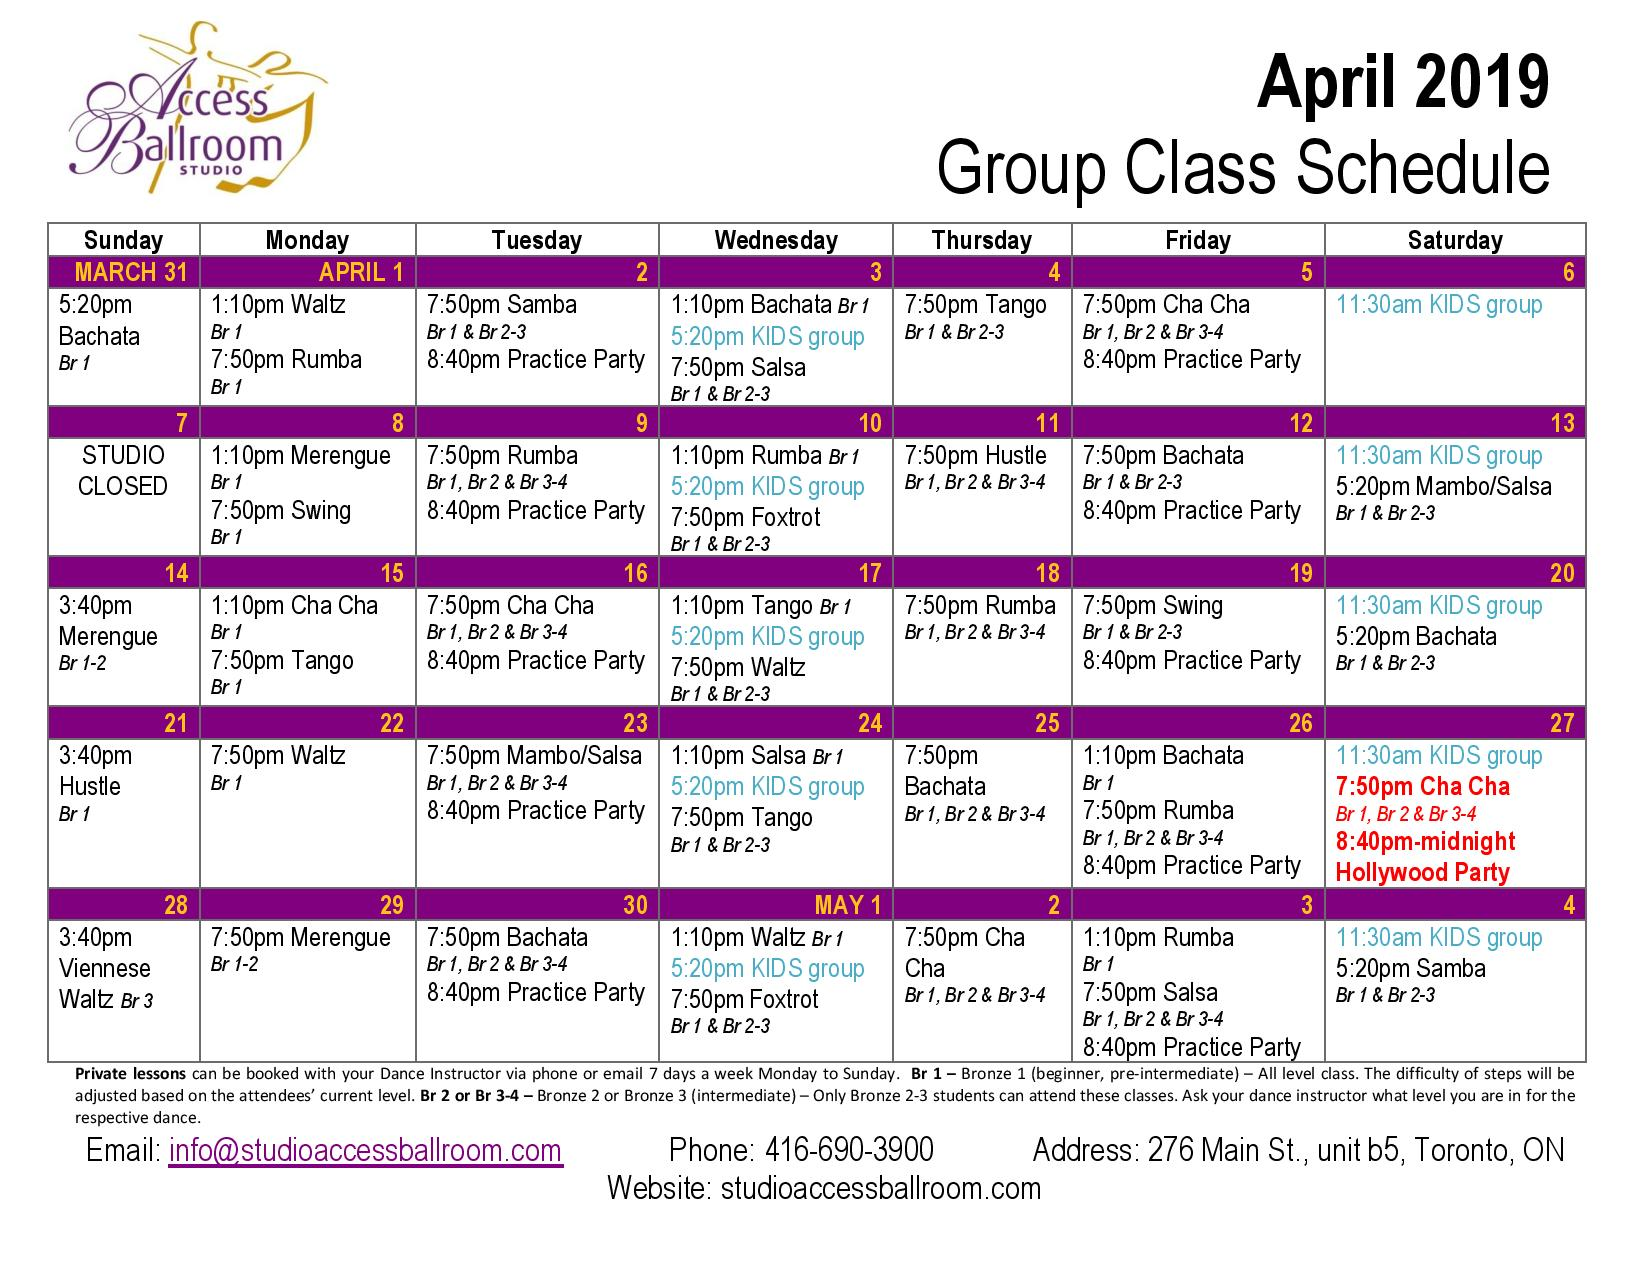 kids dance lessons adult dance lessons practice party salsa group lessons schedule classes courses picture of Calendar at Access Ballroom Studio in the beaches - Toronto Cha Cha Salsa Merengue Waltz Tango Bachata Rumba Swing Foxtrot Viennese Waltz Hustle Hustle monday tuesday wednesday thursday friday saturday sunday salsa march 2019